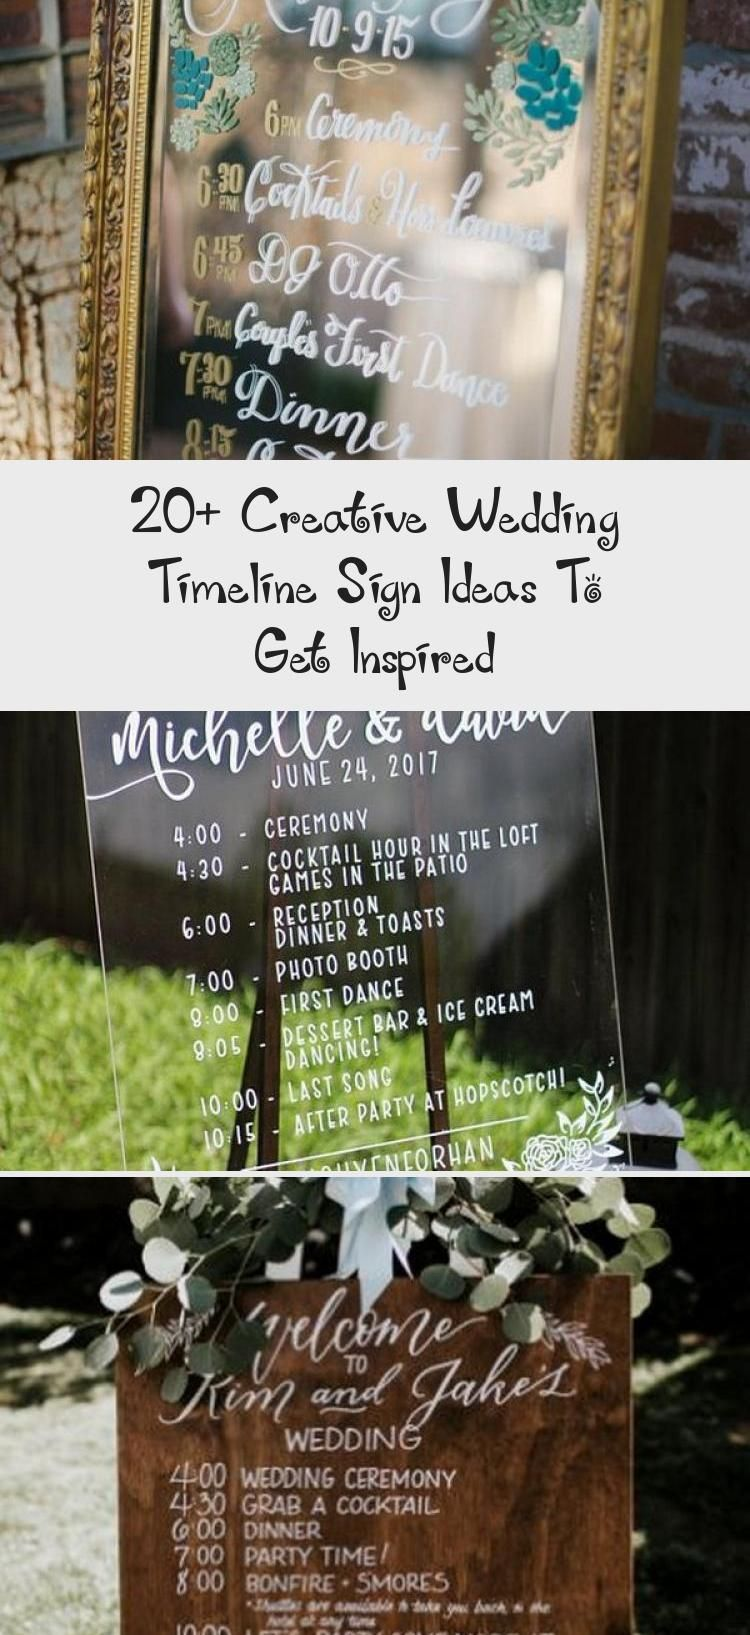 Rustic Wedding Day Timeline Signs For Outdoor Weddings Weddingdetailsgift Weddingdetailsseatingcharts In 2020 Wedding Timeline Wedding Details Mirror Wedding Signs